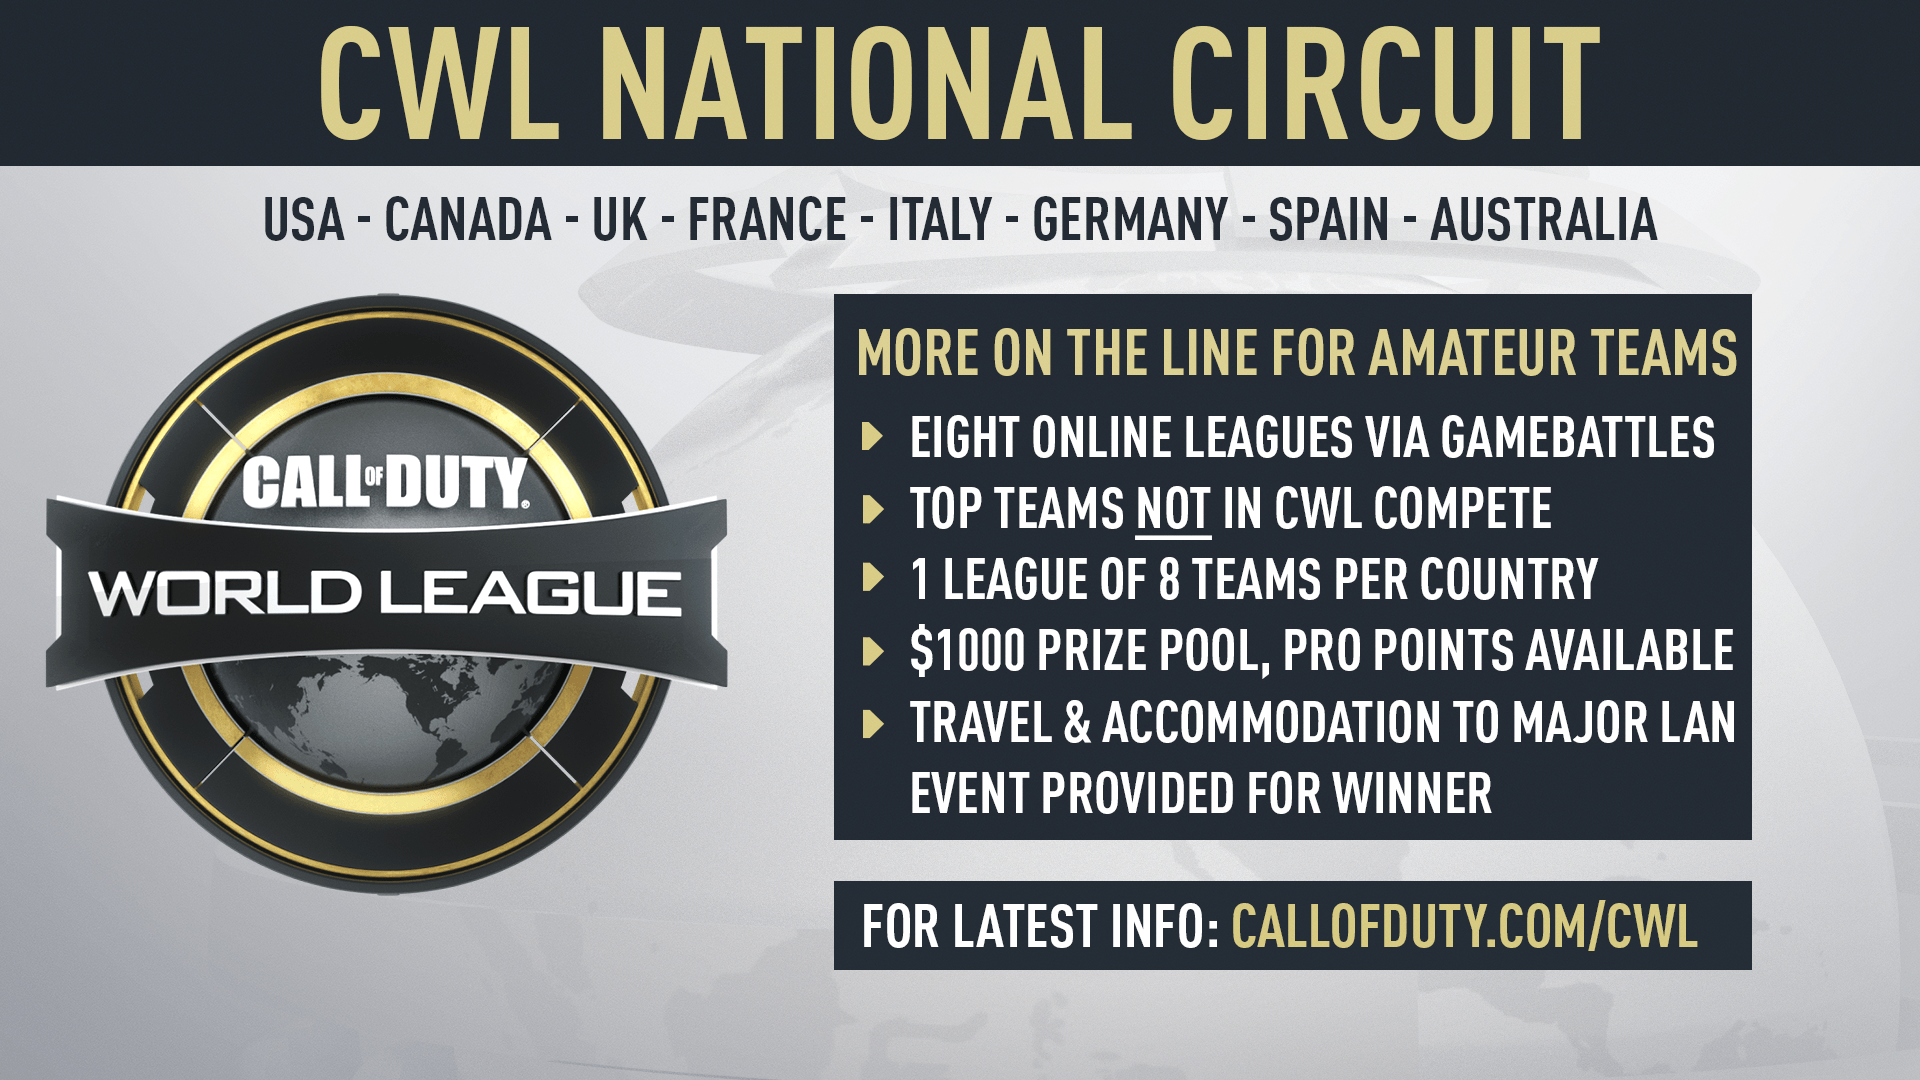 cwl_national_leagues_card_v2